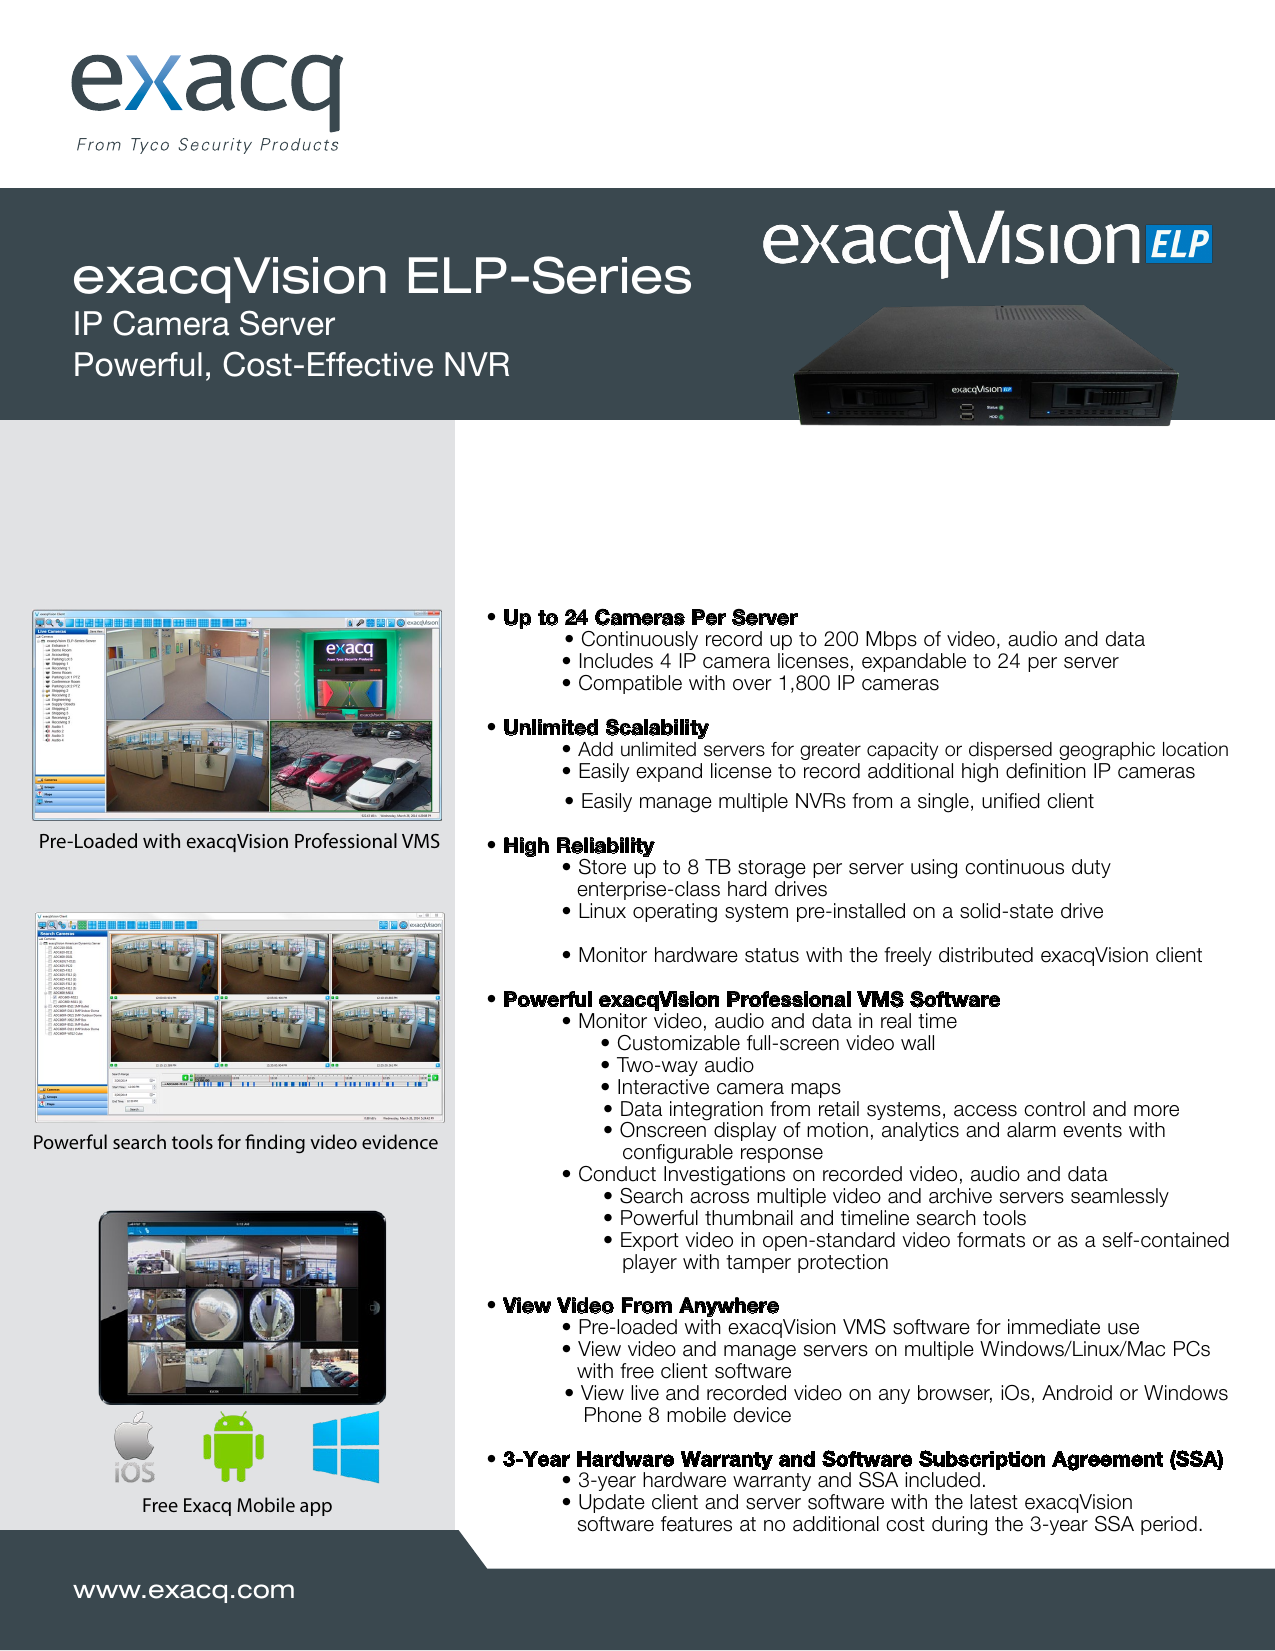 exacqVision ELP-Series IP Camera Server Powerful, Cost